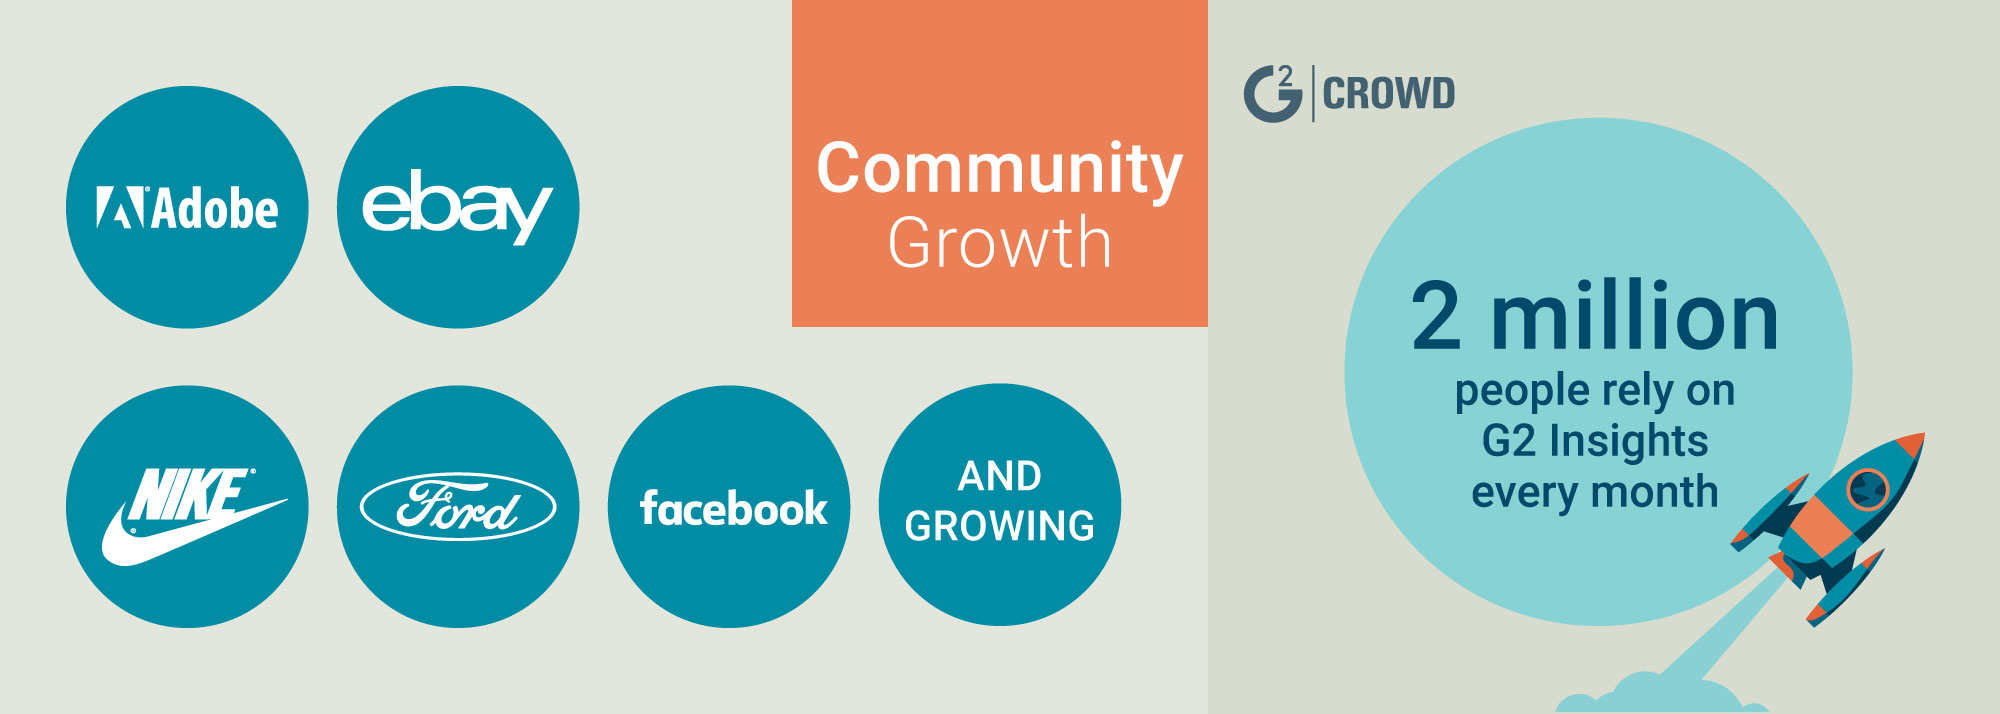 G2 Crowd Series C User Growth by year